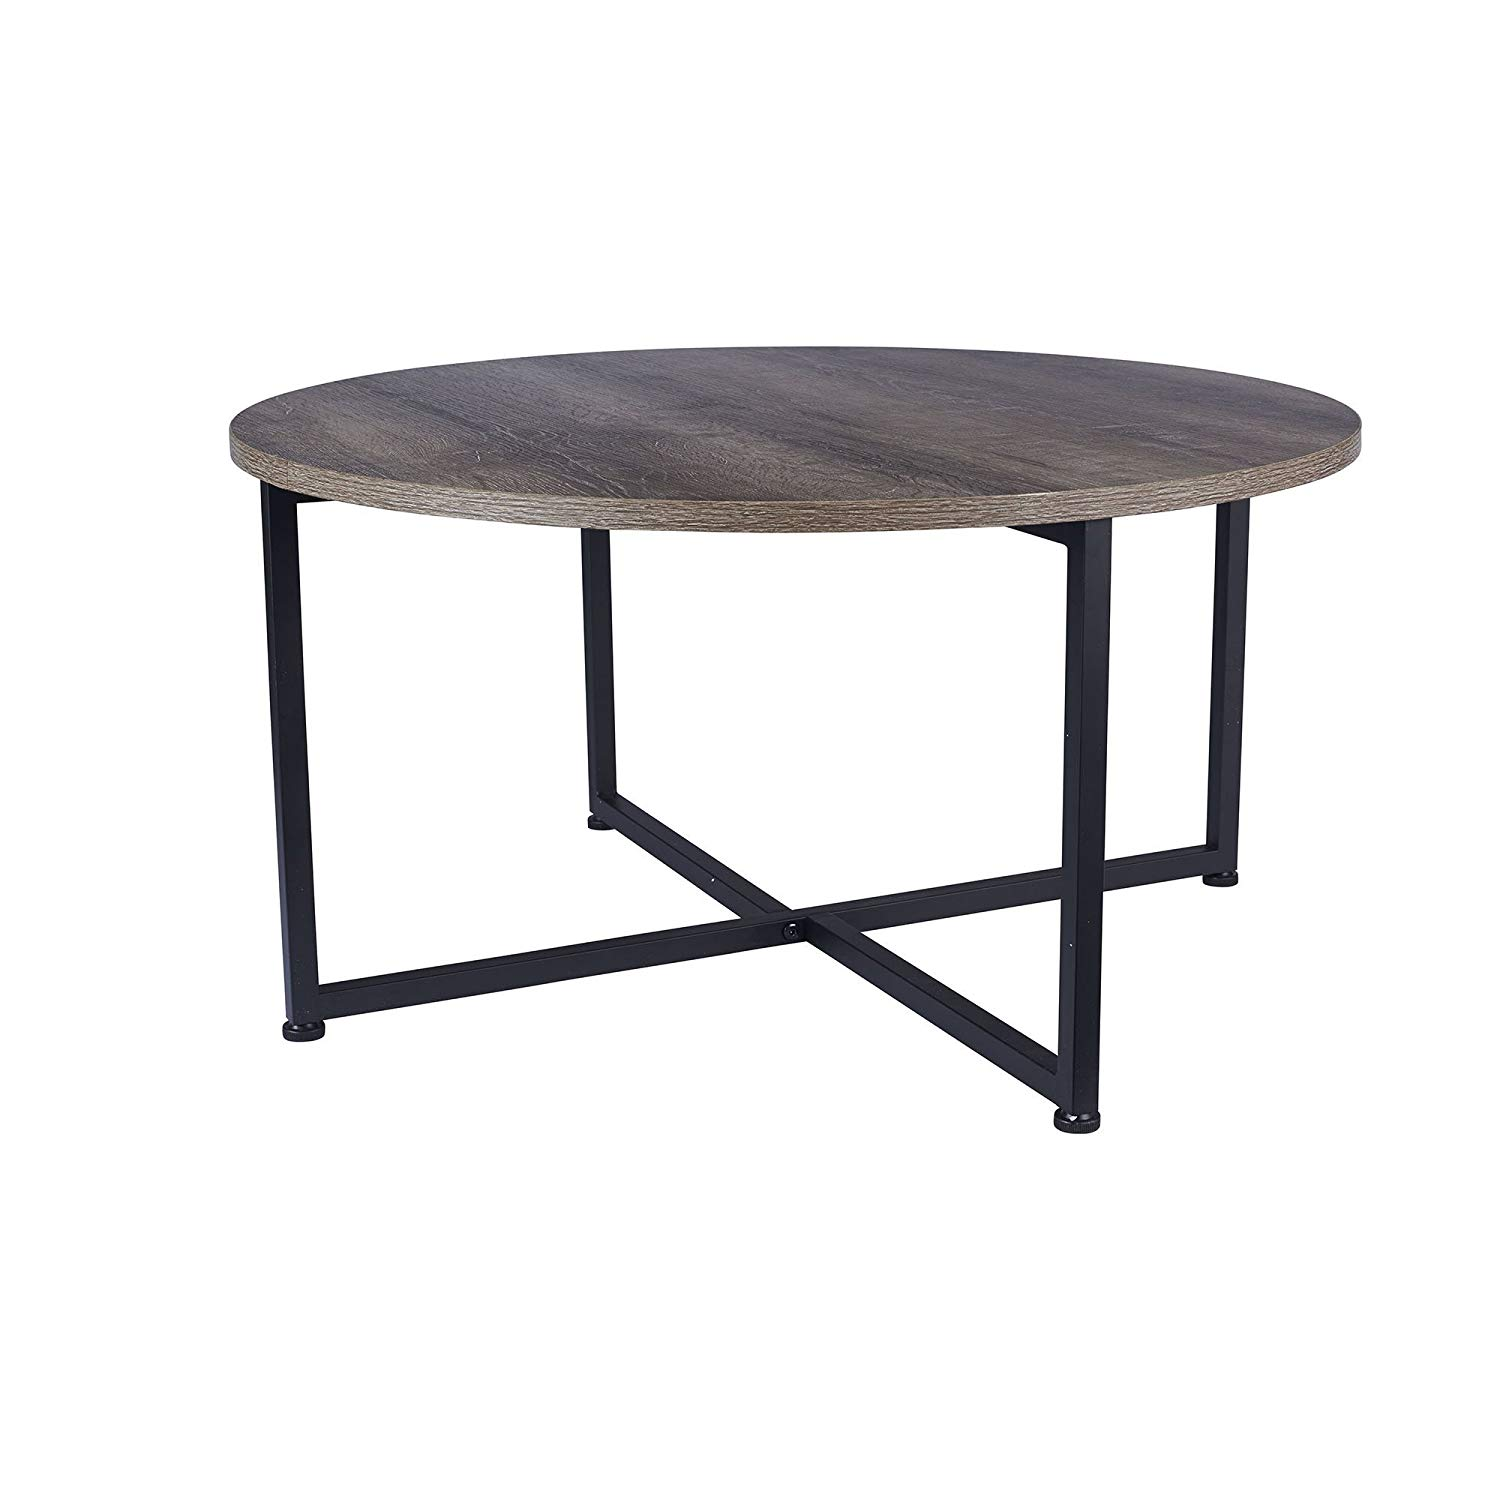 household essentials ashwood round coffee table low accent distressed gray brown black metal frame kitchen dining turquoise console ikea wall storage room chairs with leaf modern